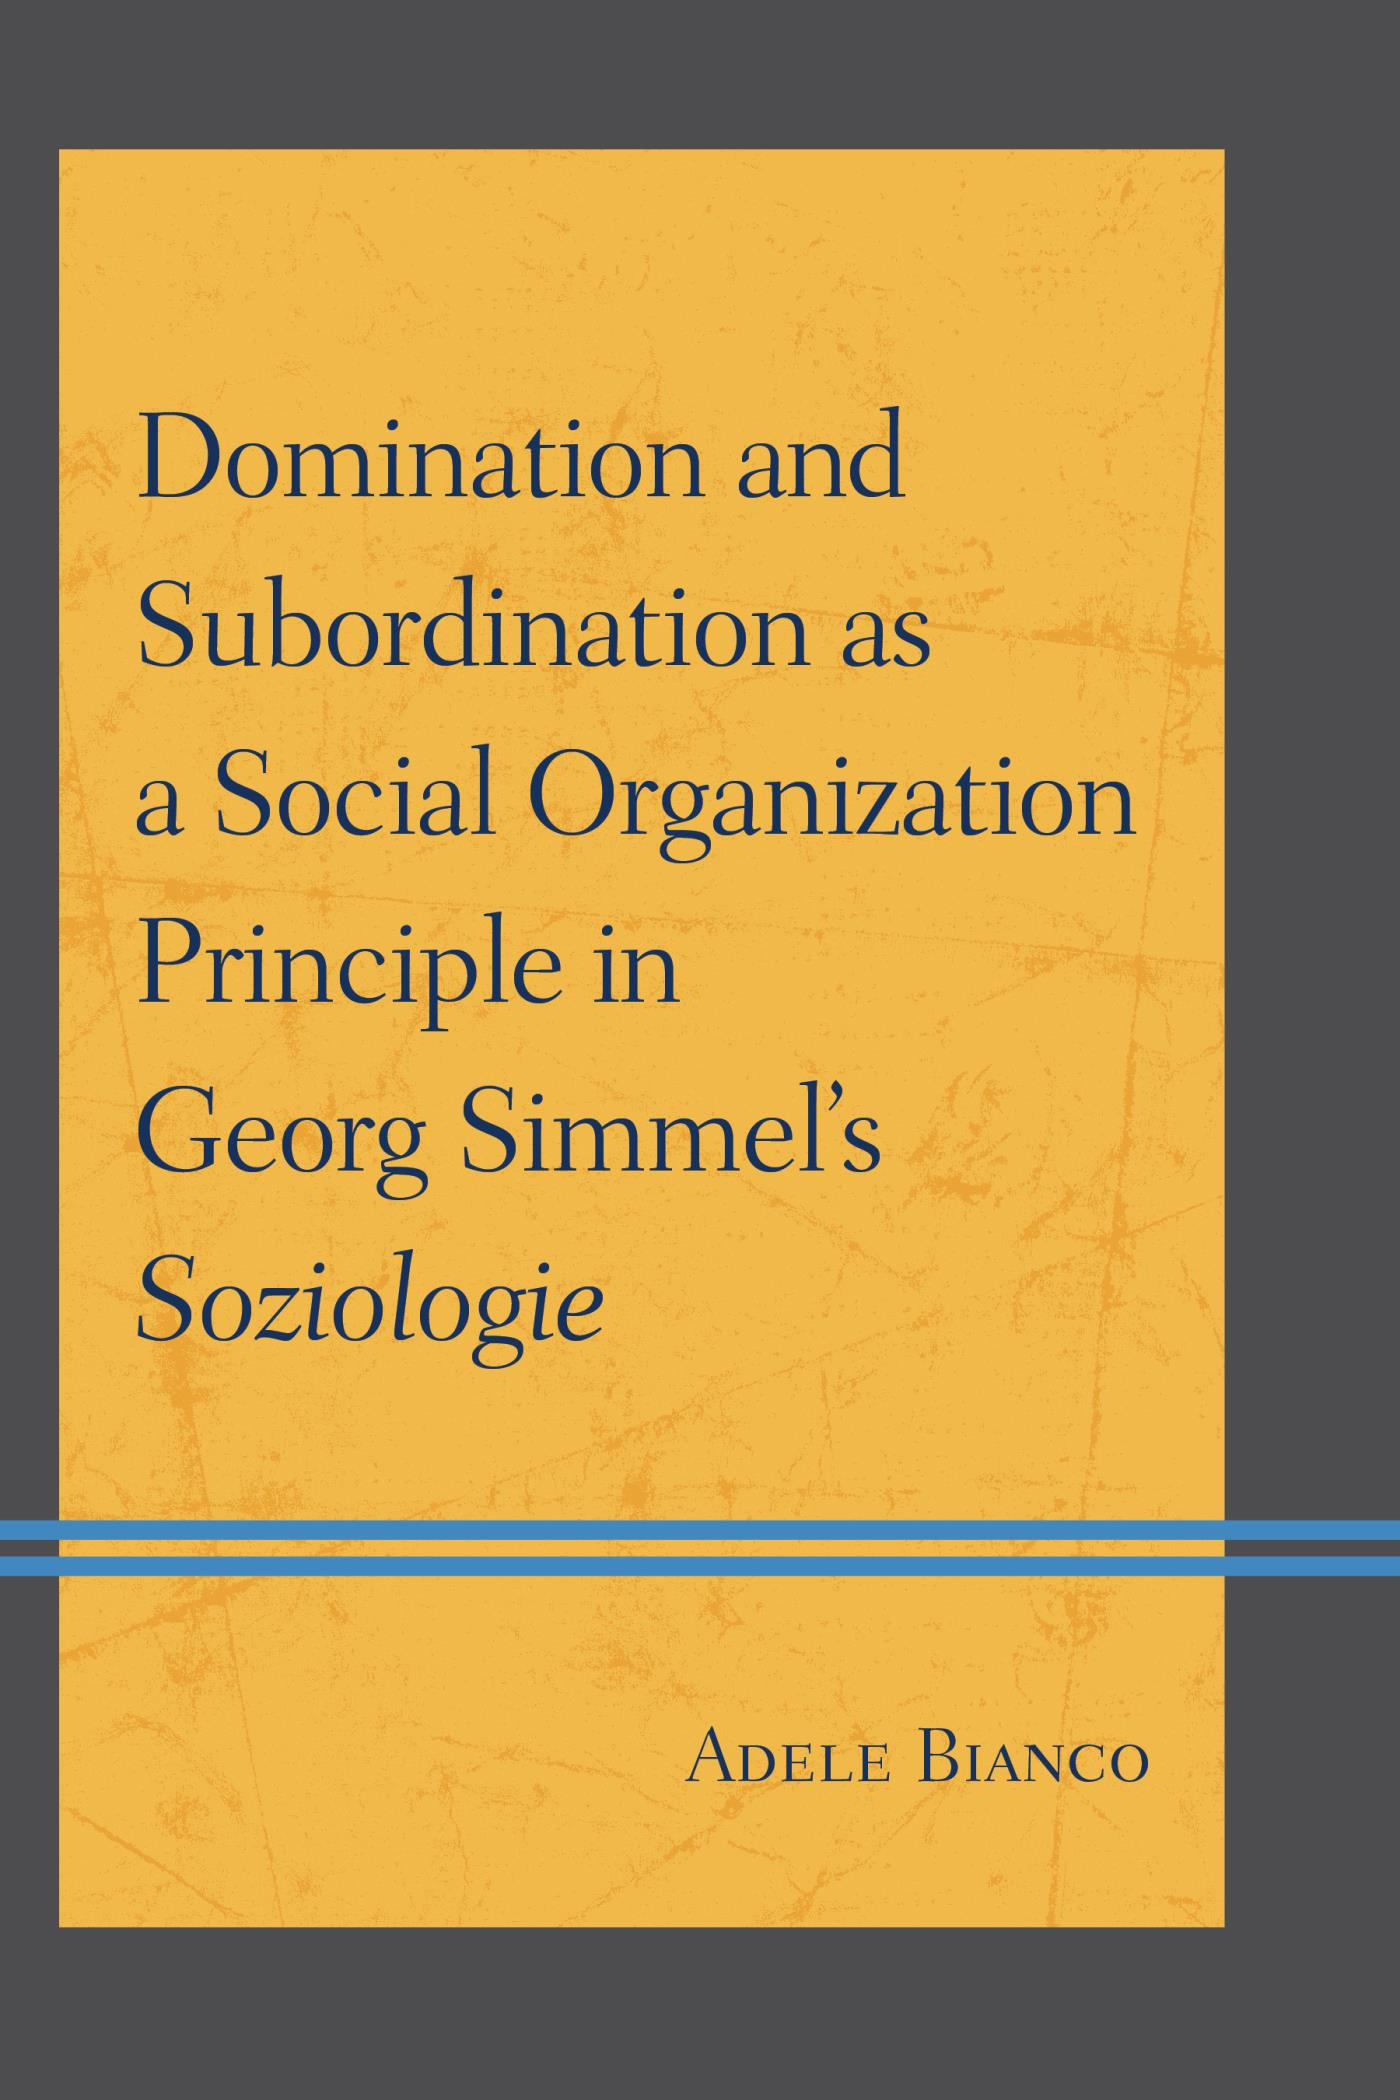 georg simmel domination and freedom